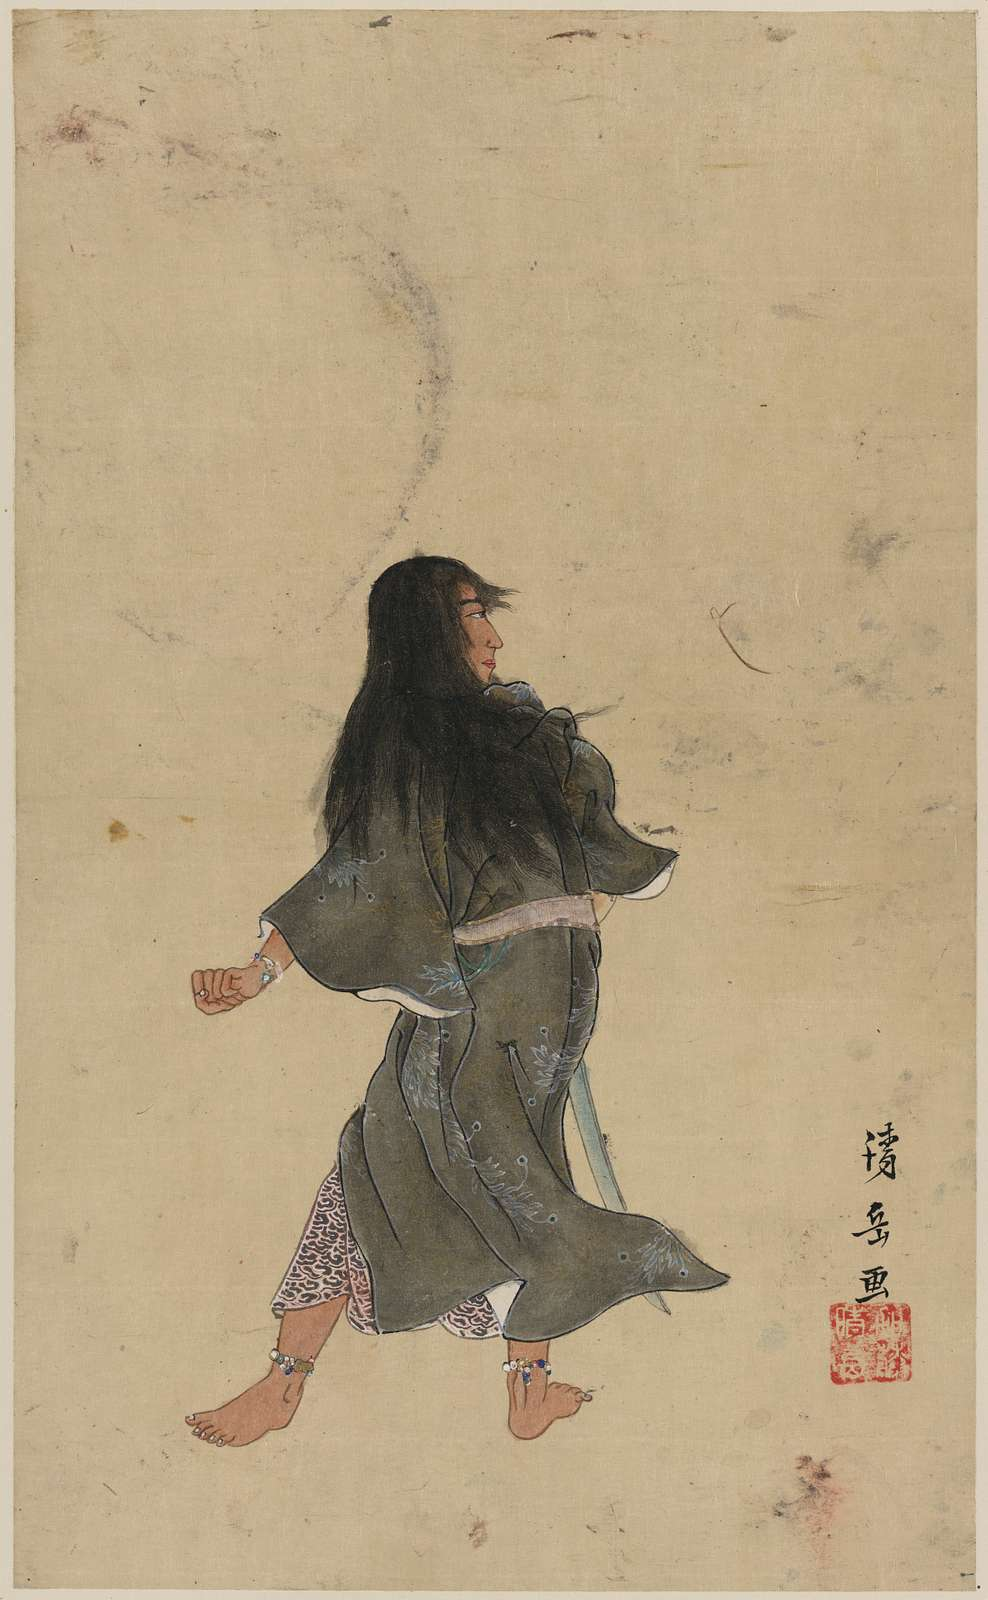 [Warrior or actor with long hair and bracelets around wrist and ankles, full-length, seen from behind, holding a sword]